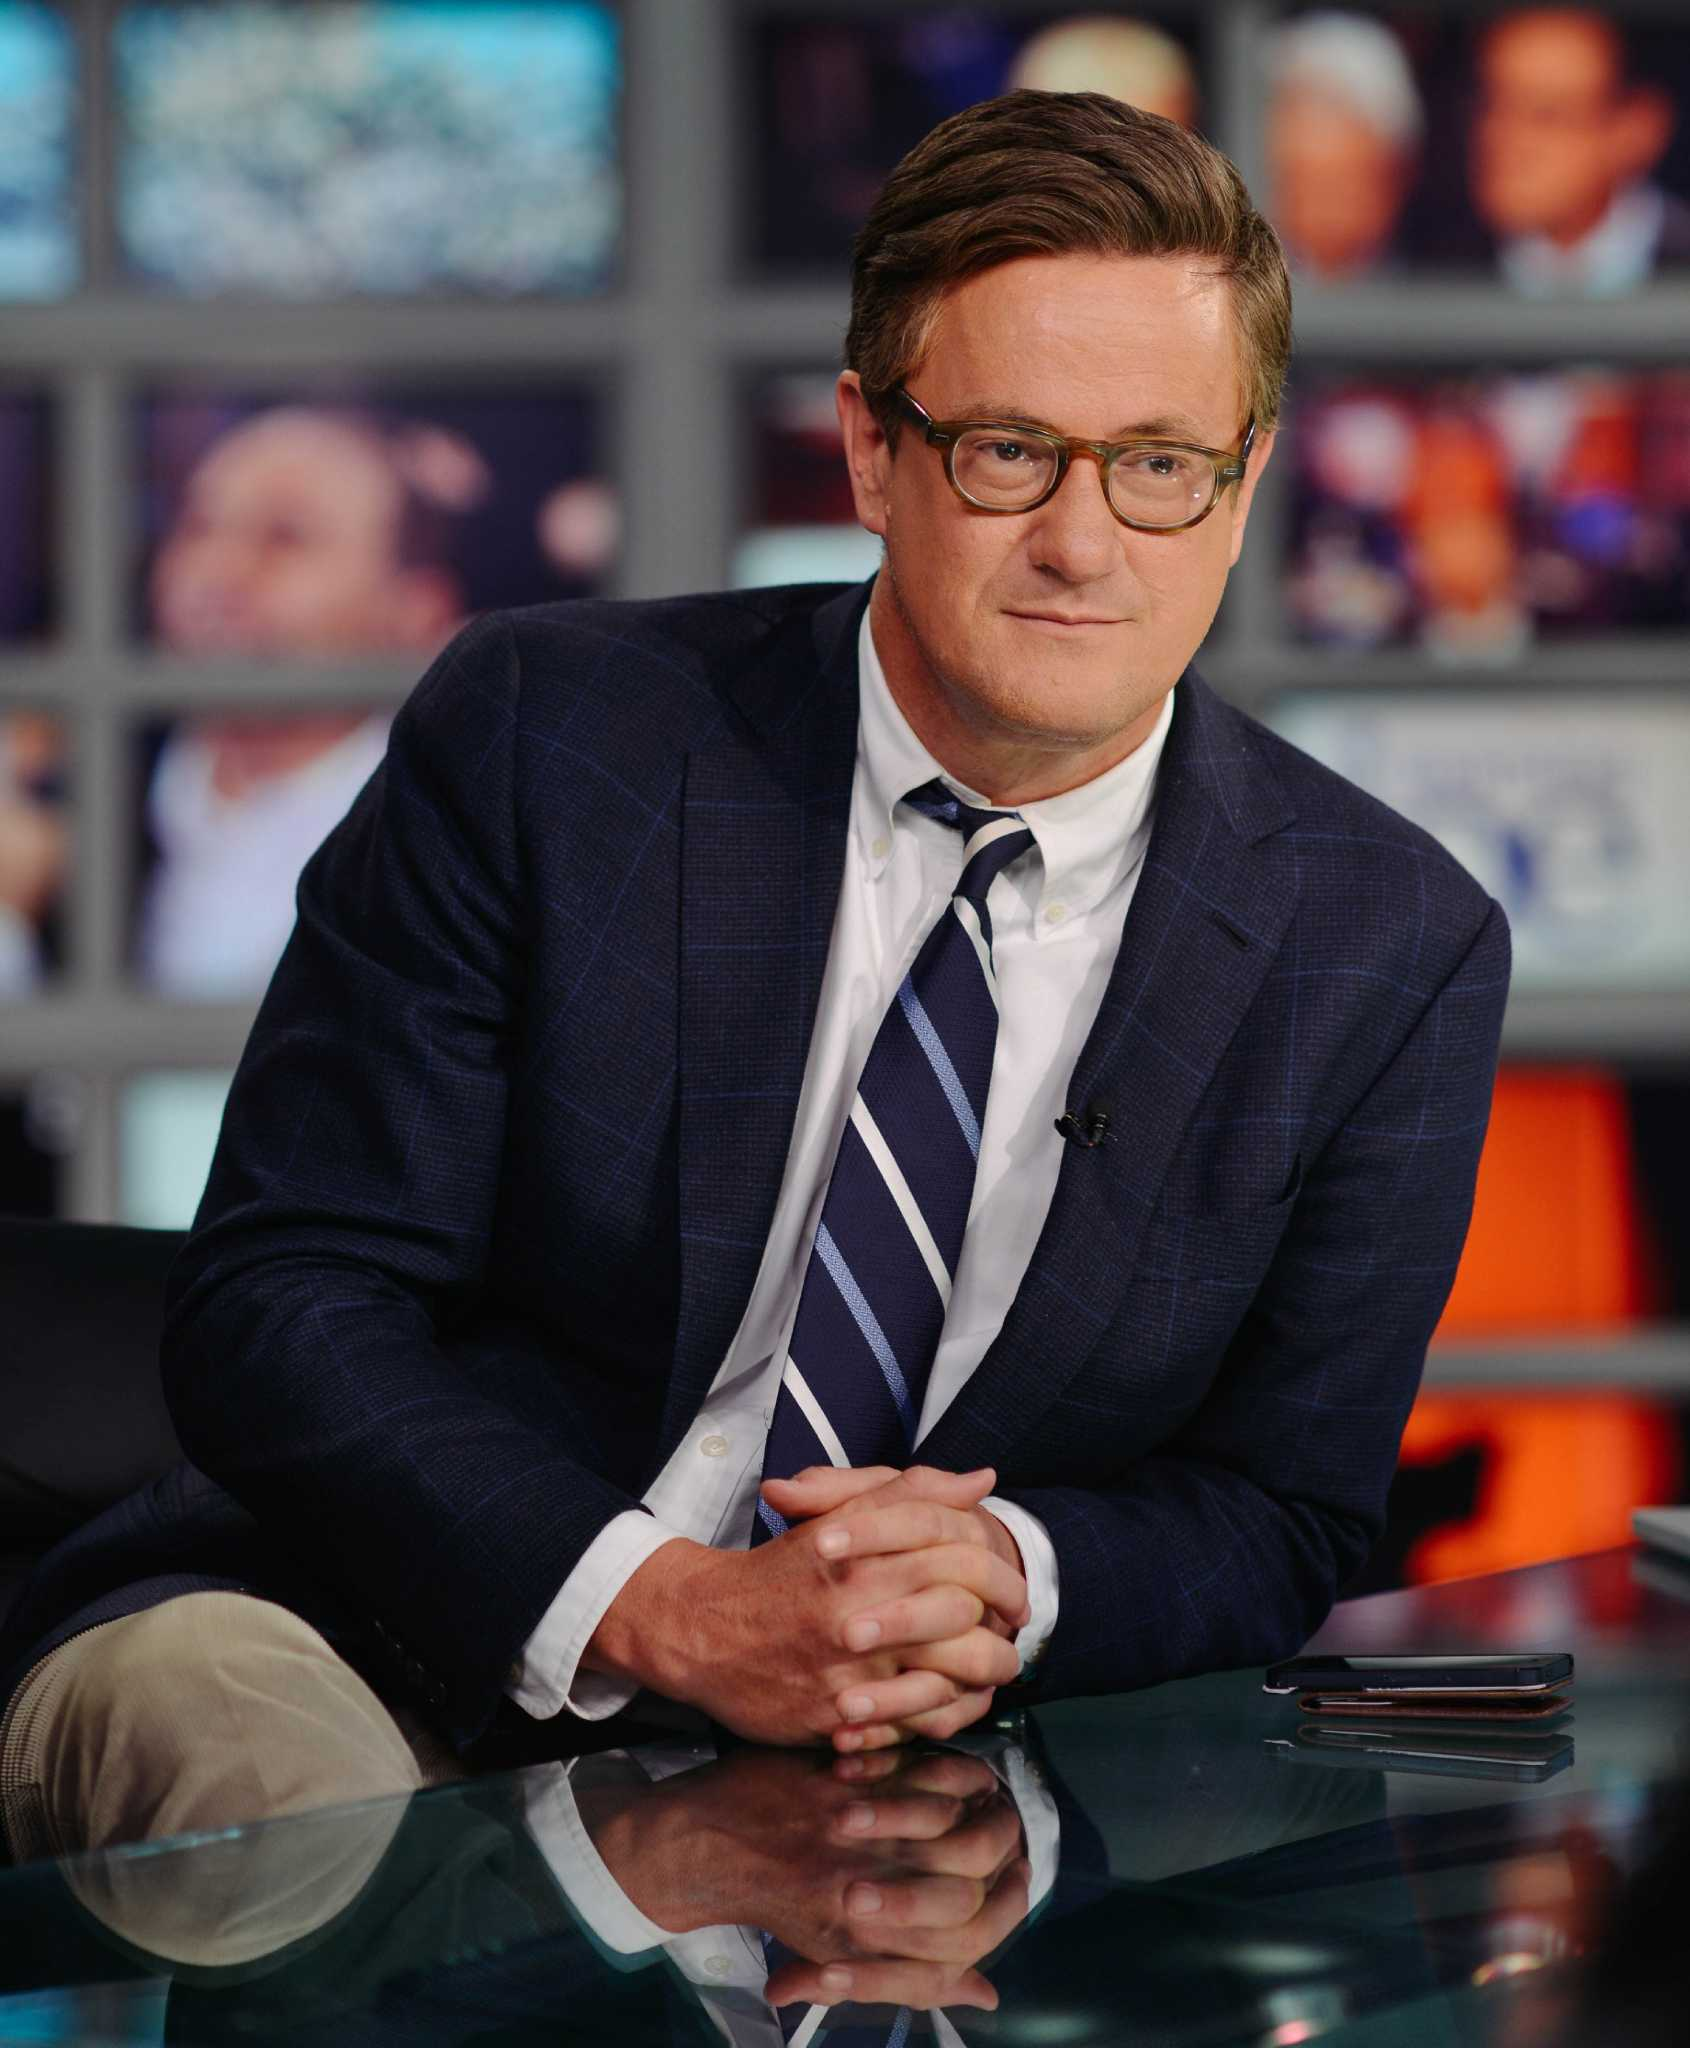 Scarborough Suggests Trump Leaked Own Tax Return To